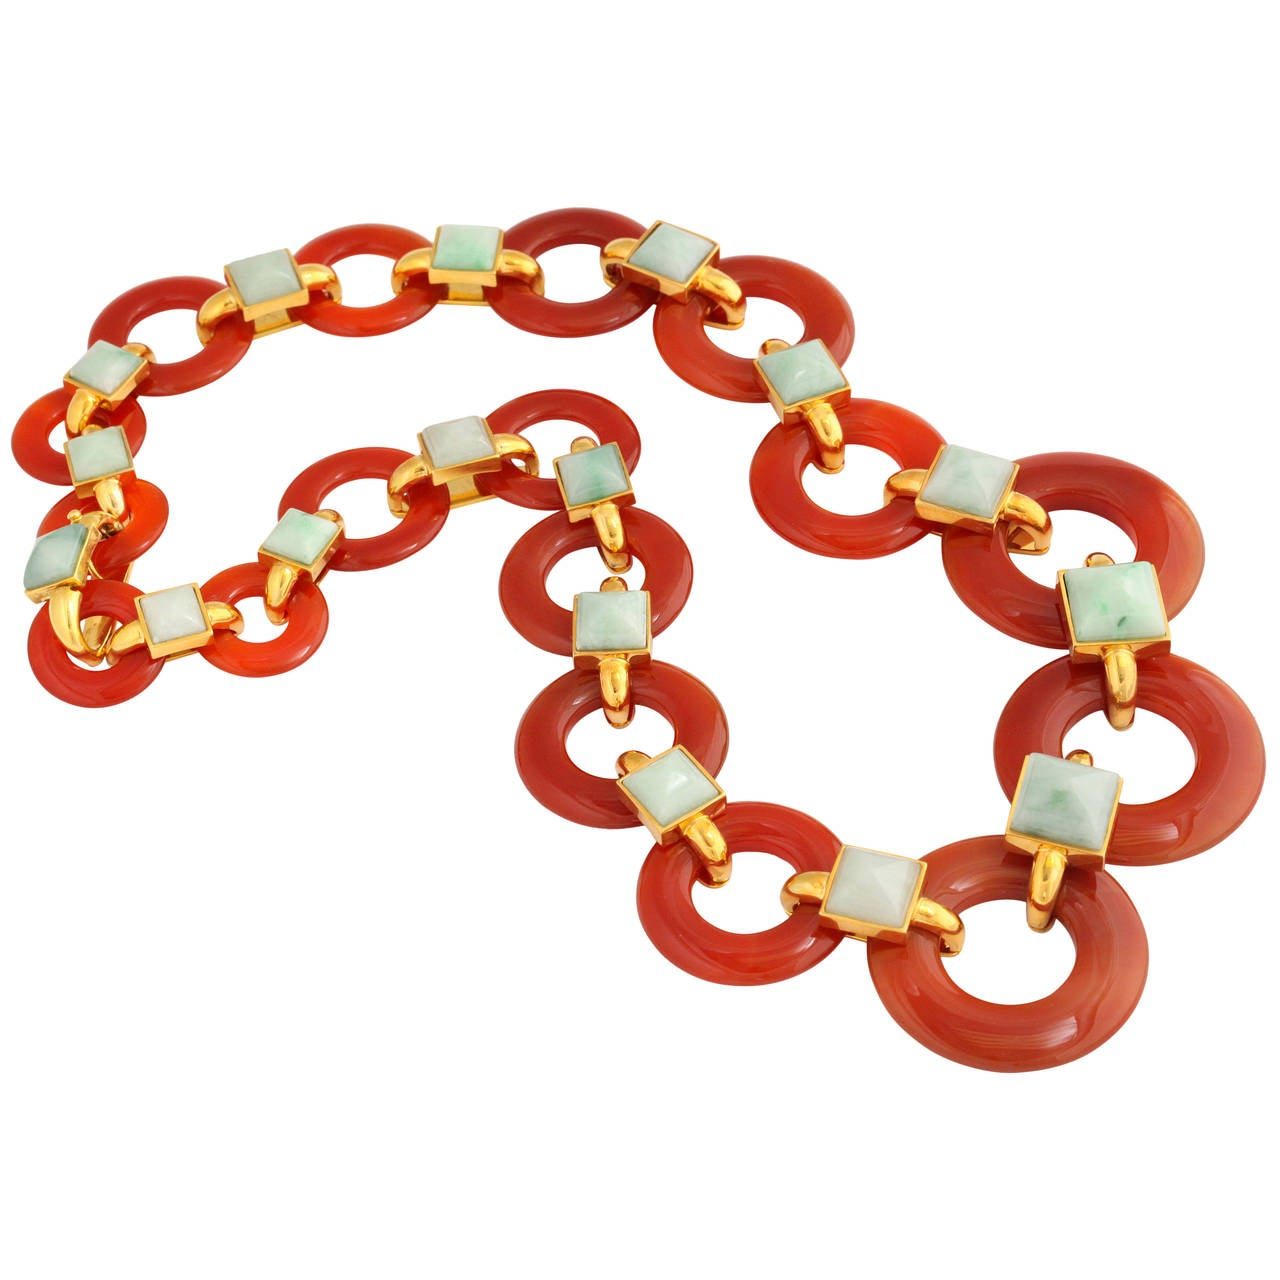 1970s Aldo Cipullo Carved Carnelian Jade Gold Link Necklace For Sale